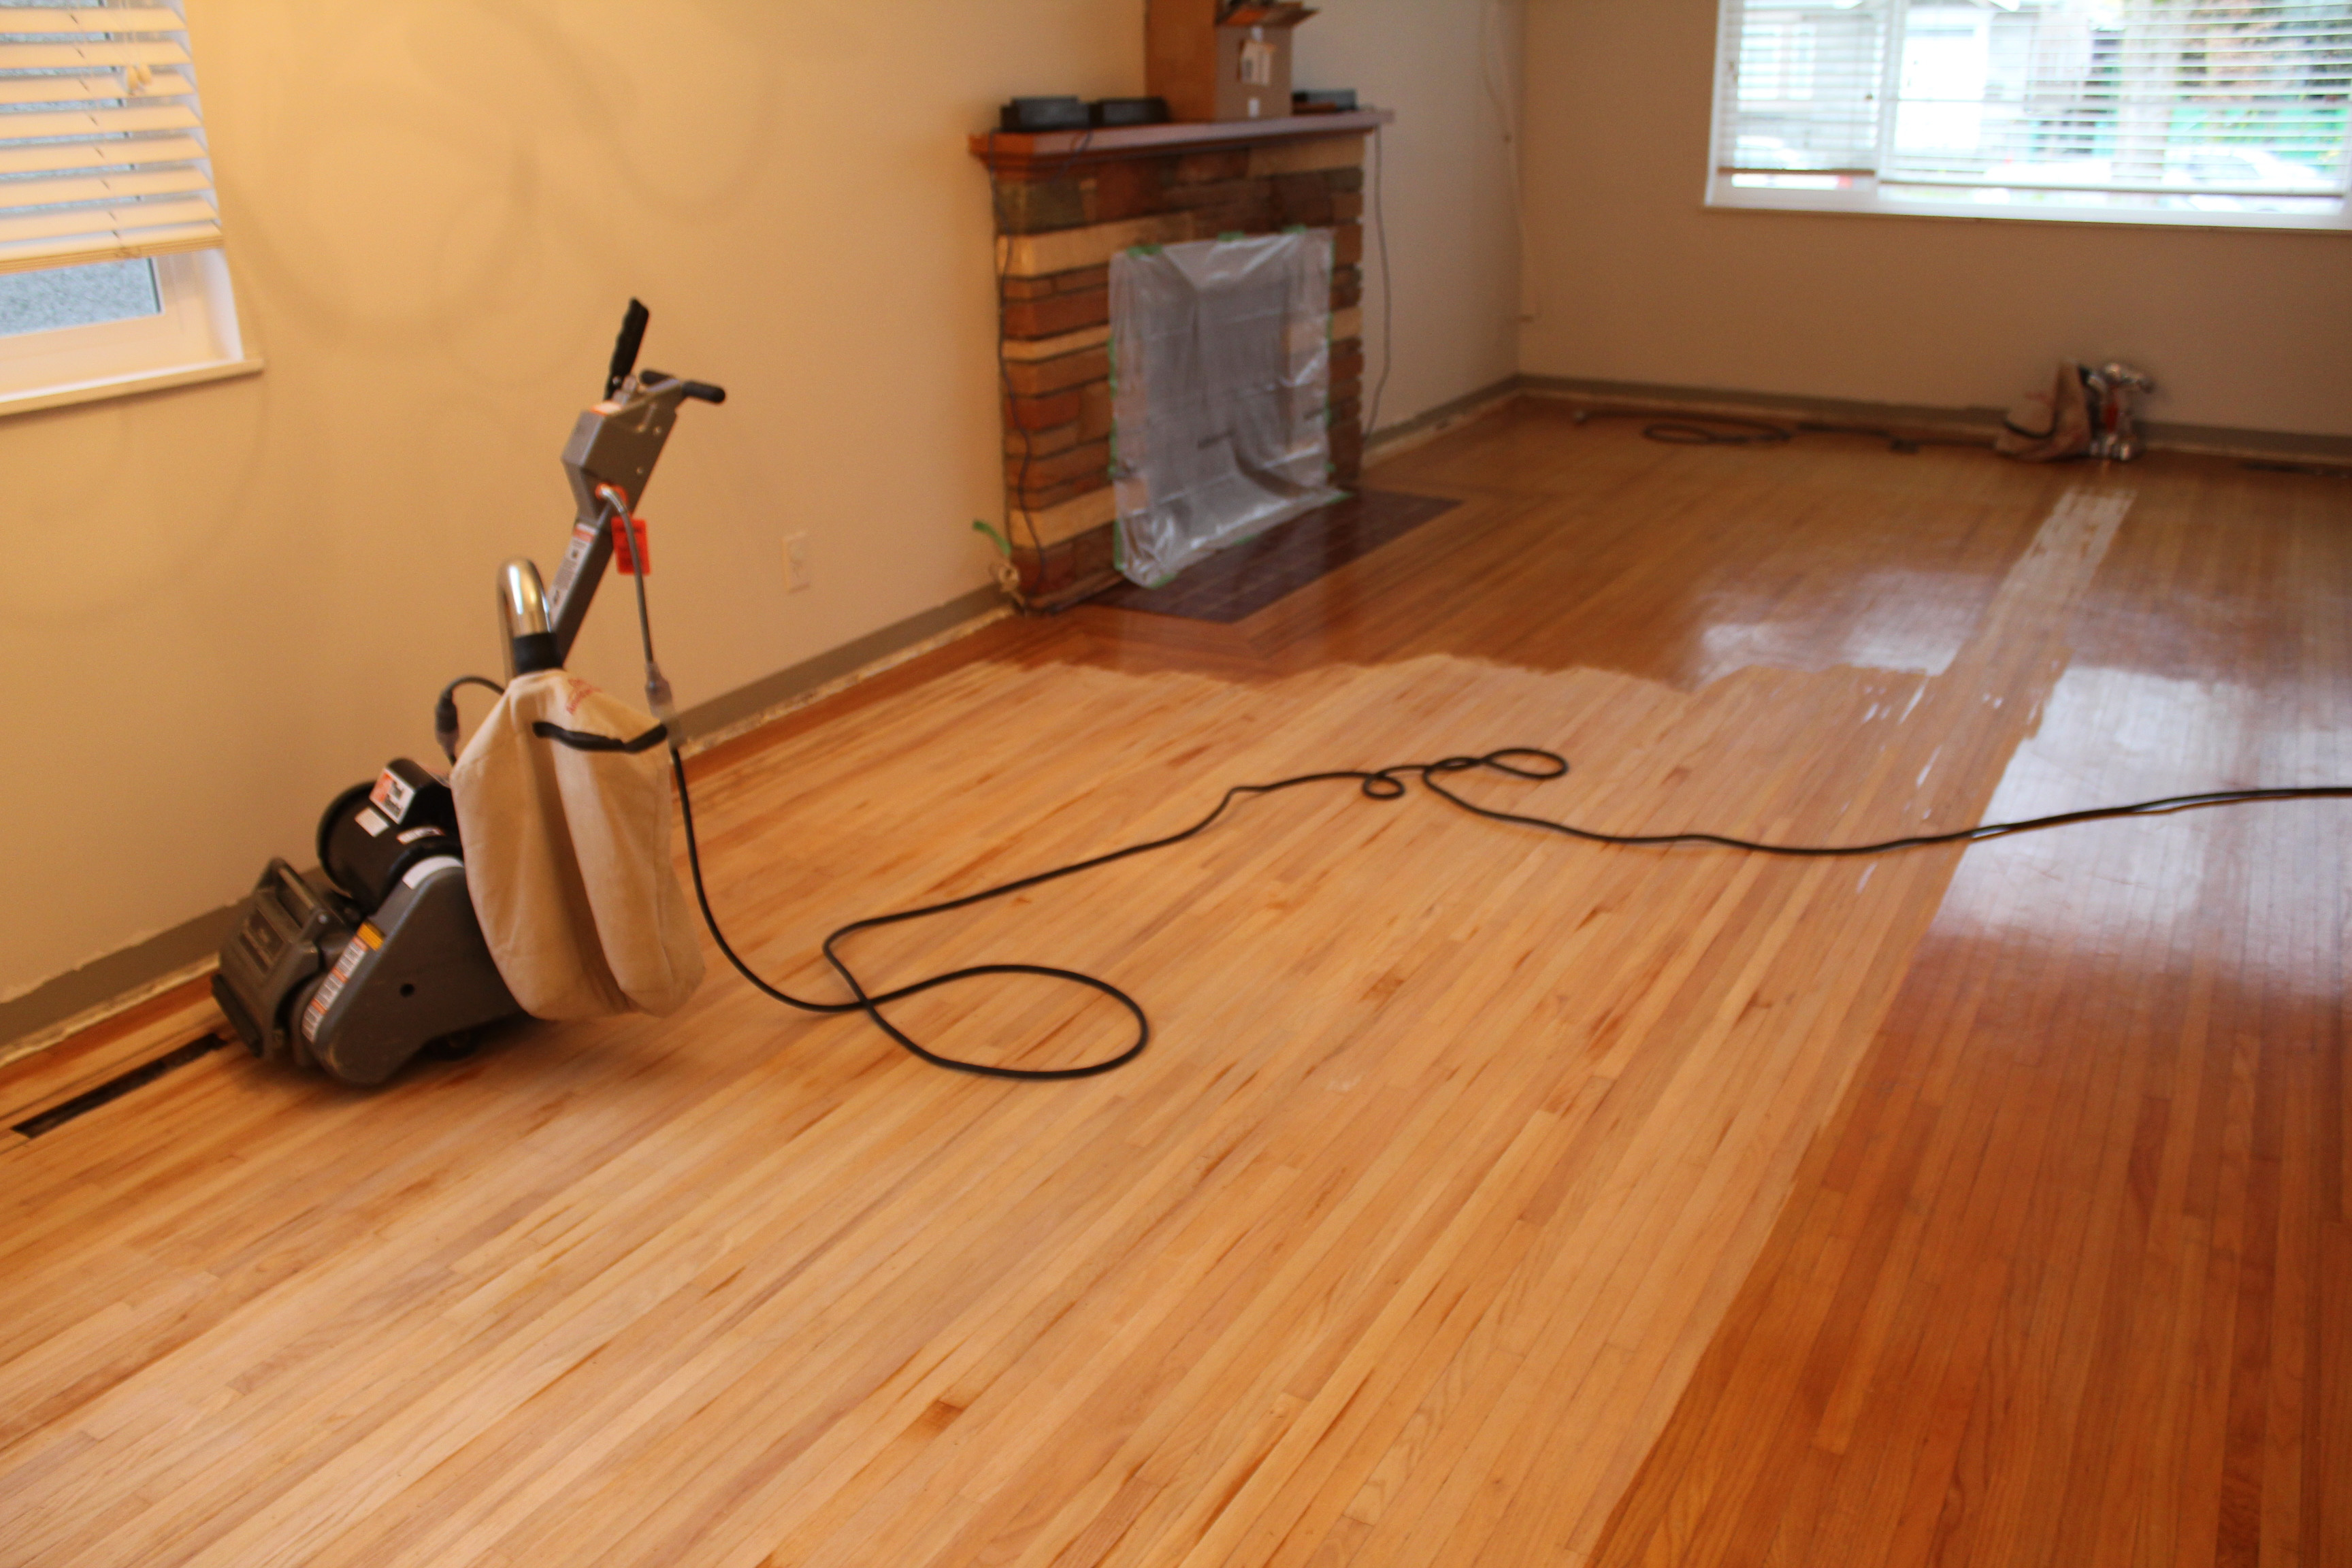 how much it cost to refinish hardwood floors of cleaning machine gandsoodfloors polyurethane wood floor finish inside full size of cleaning machine professional hardwood floor cleaning machines marvelous photo ideas machine v